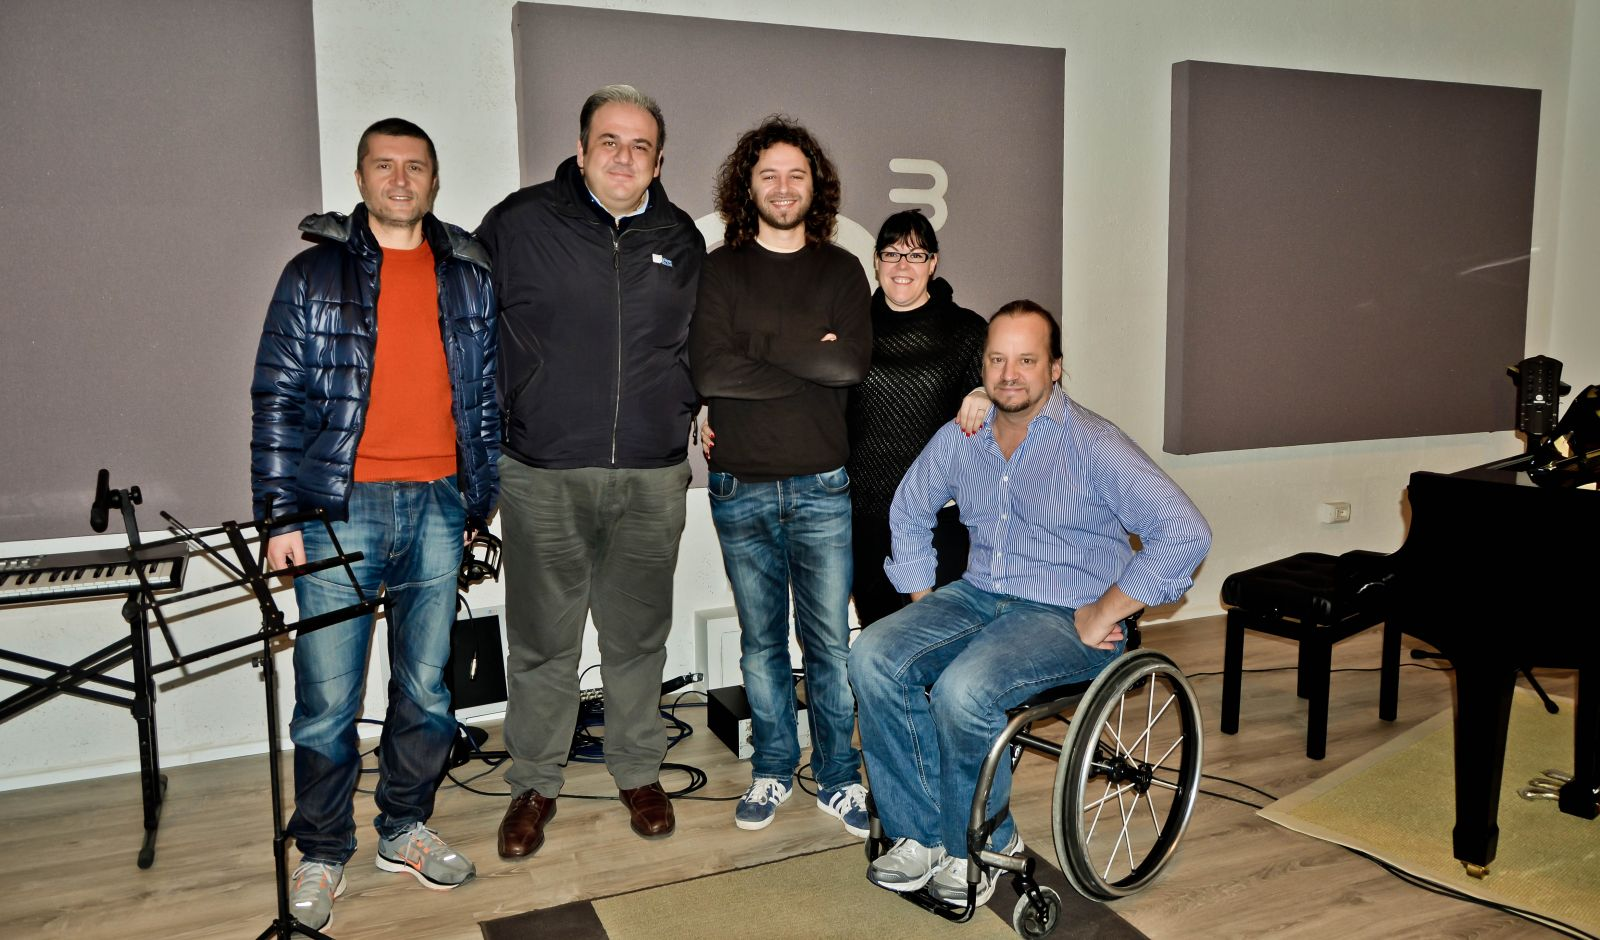 SCOTT GLEDHILL, MEYER SOUND, IN VISITA IN OFFICINA